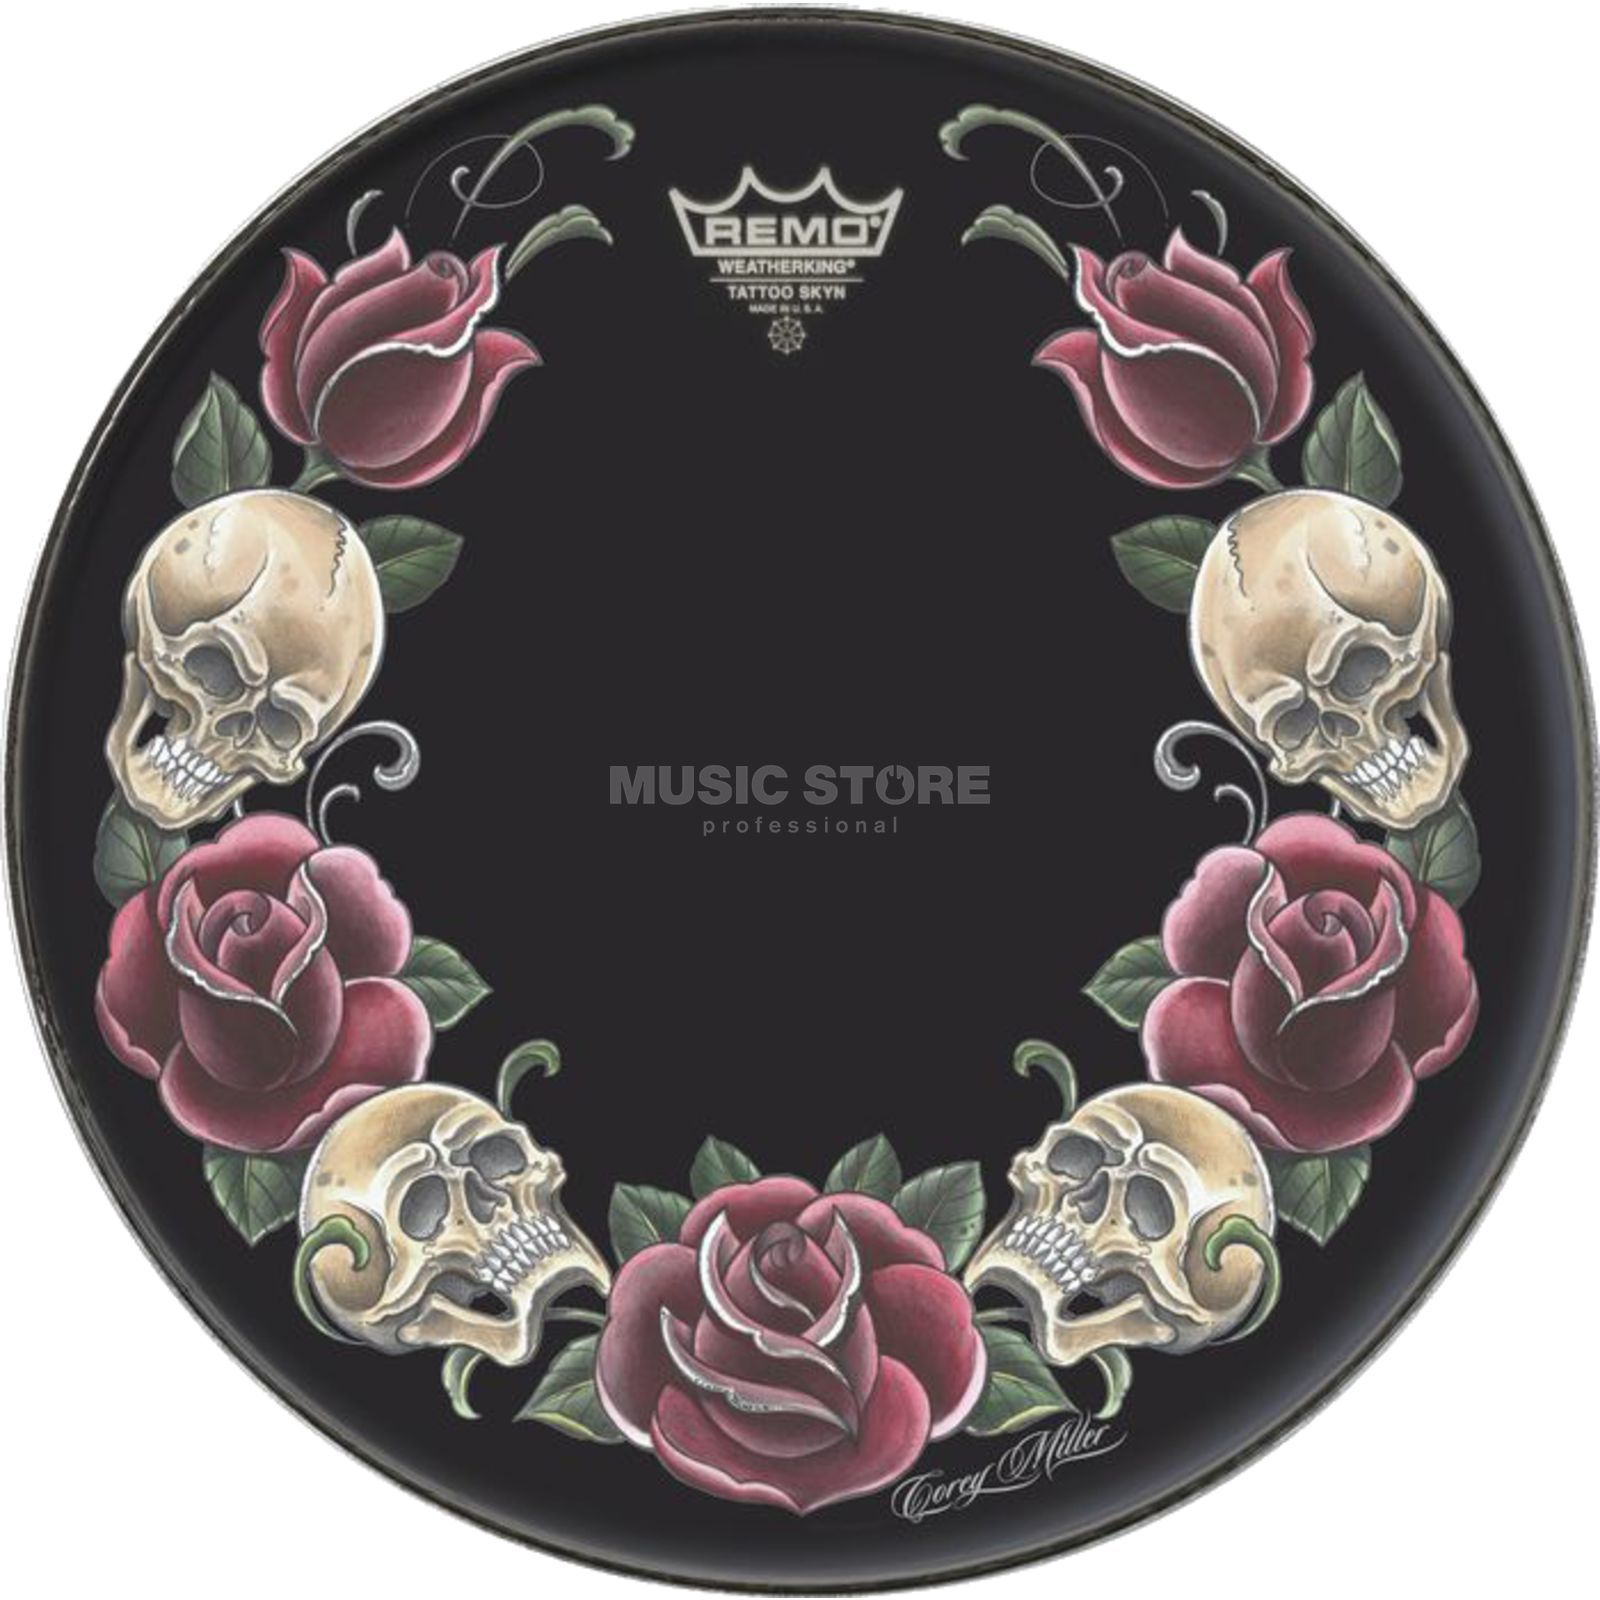 "Remo Tattoo Skyn 22"", Rock and Roses on black Produktbillede"